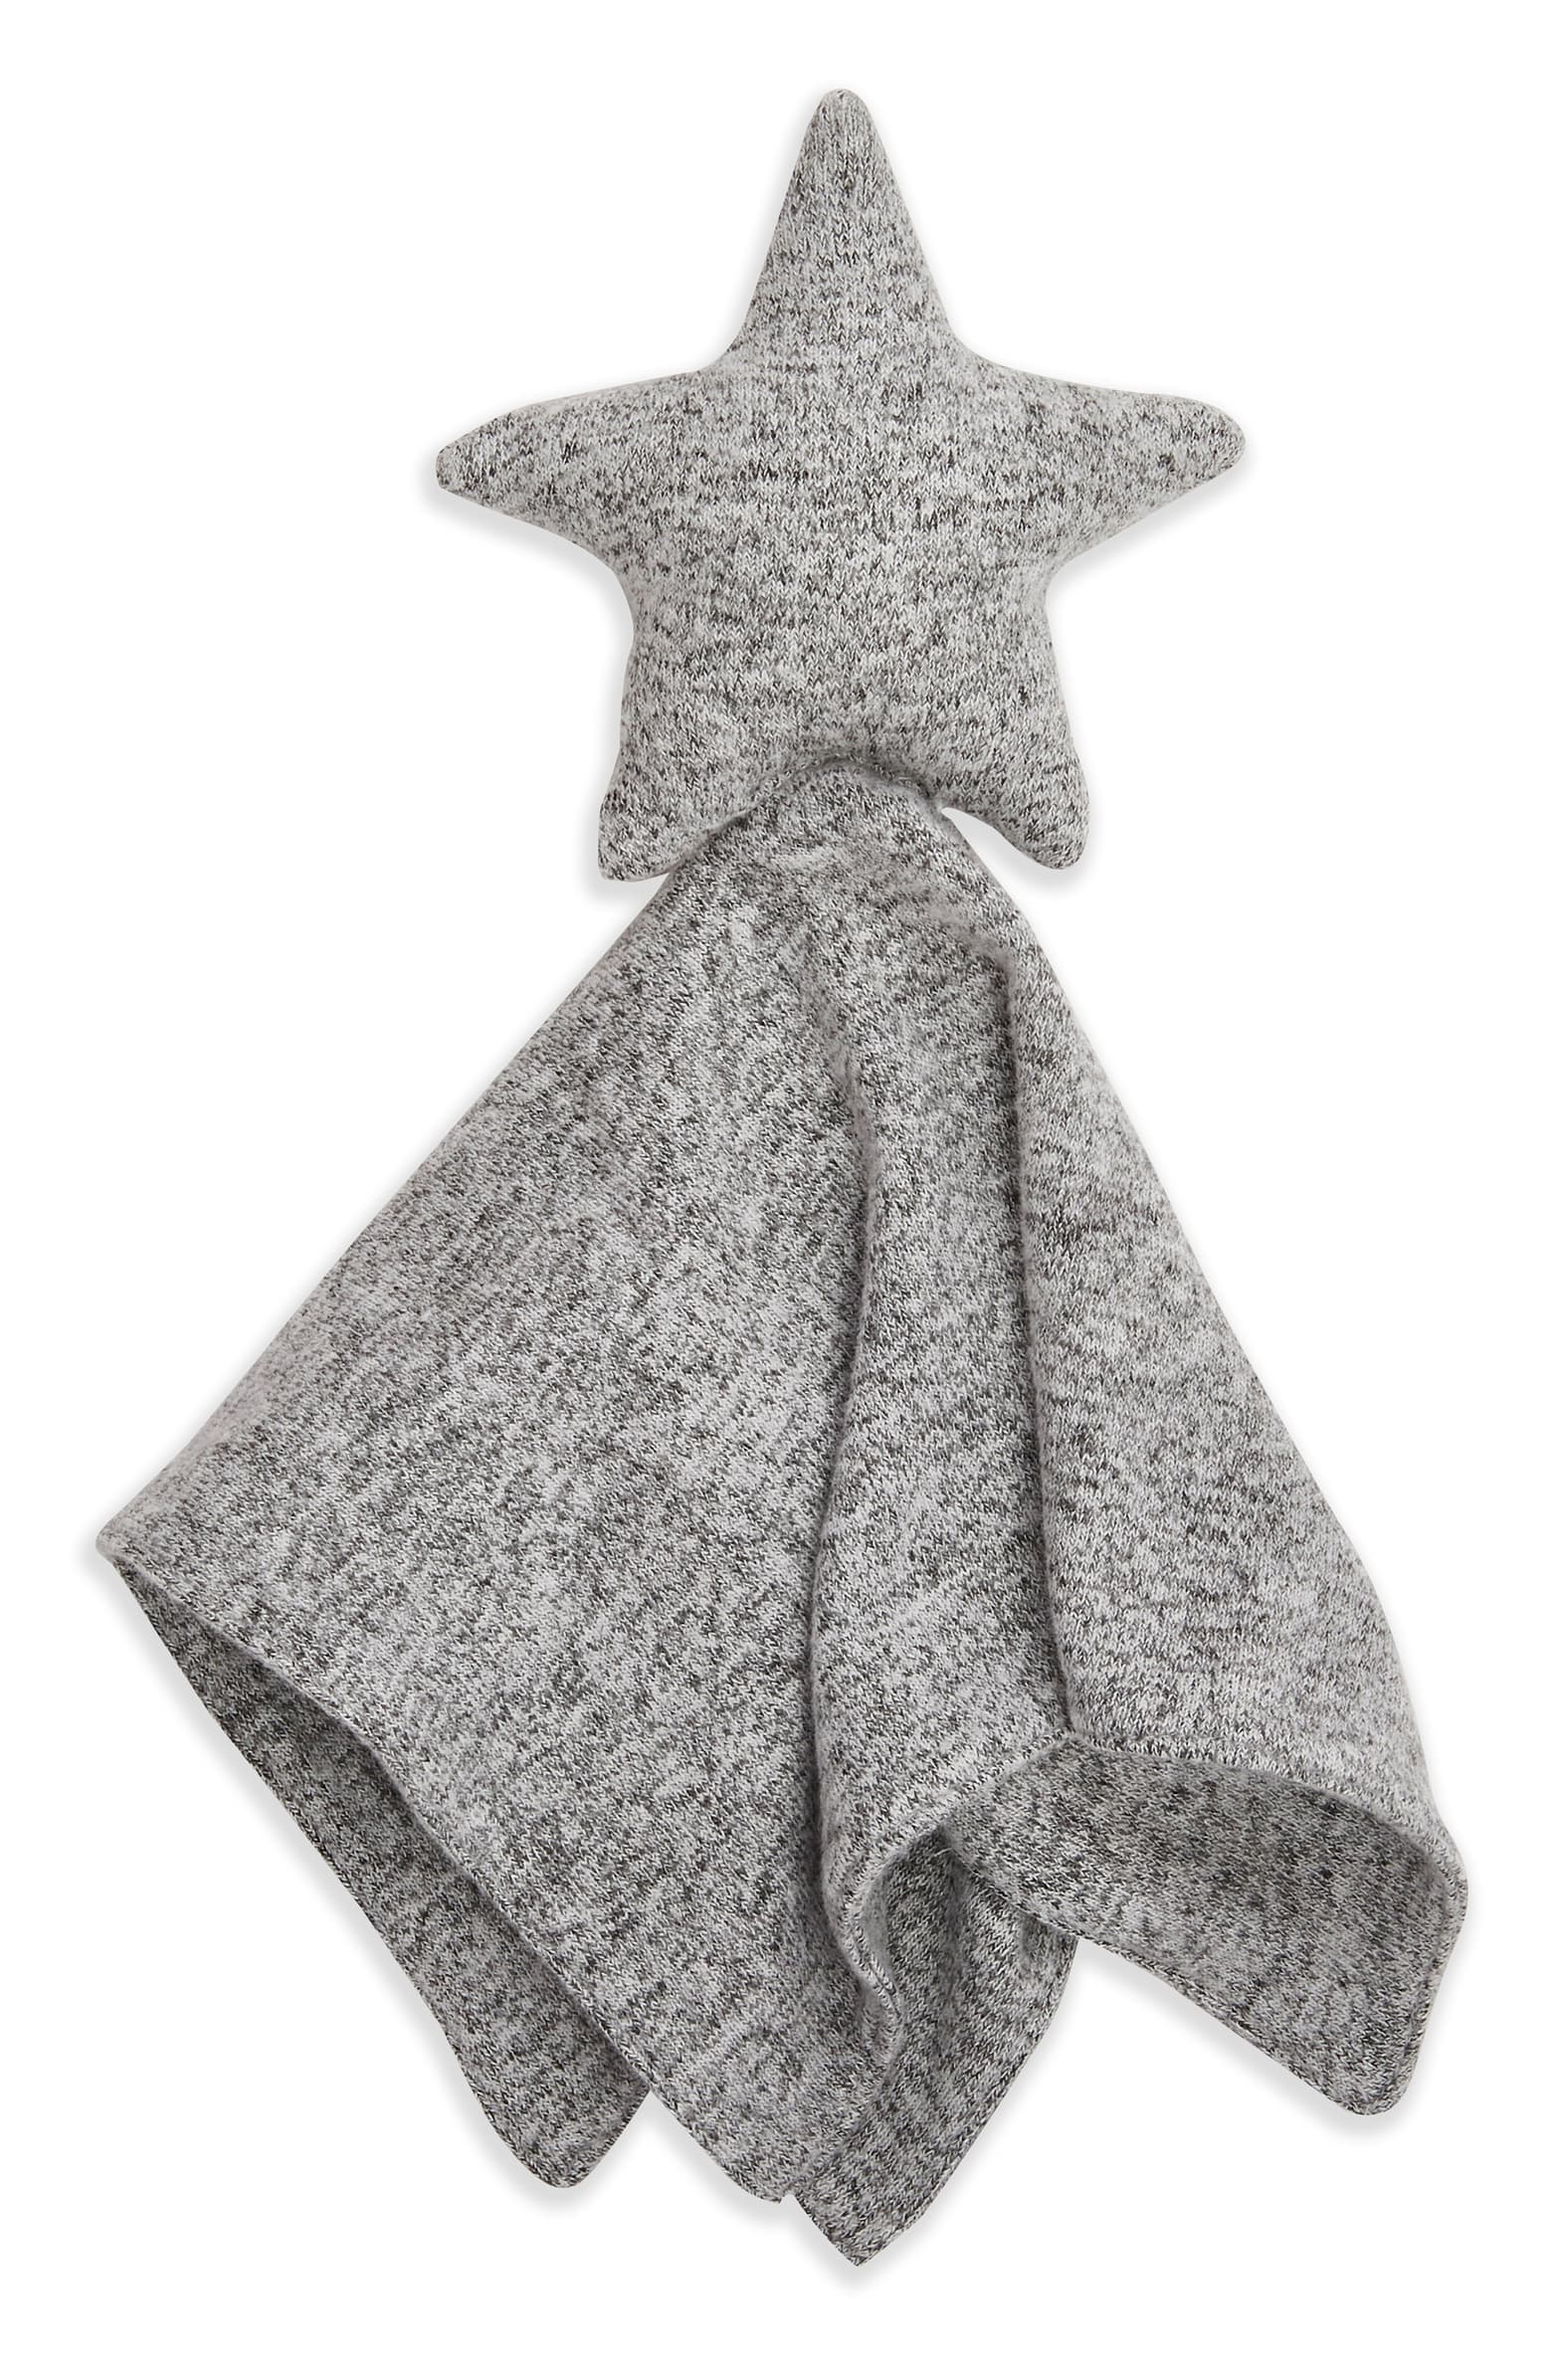 Aden and Anais Unisex Snuggle Knit Lovey Star Blanket